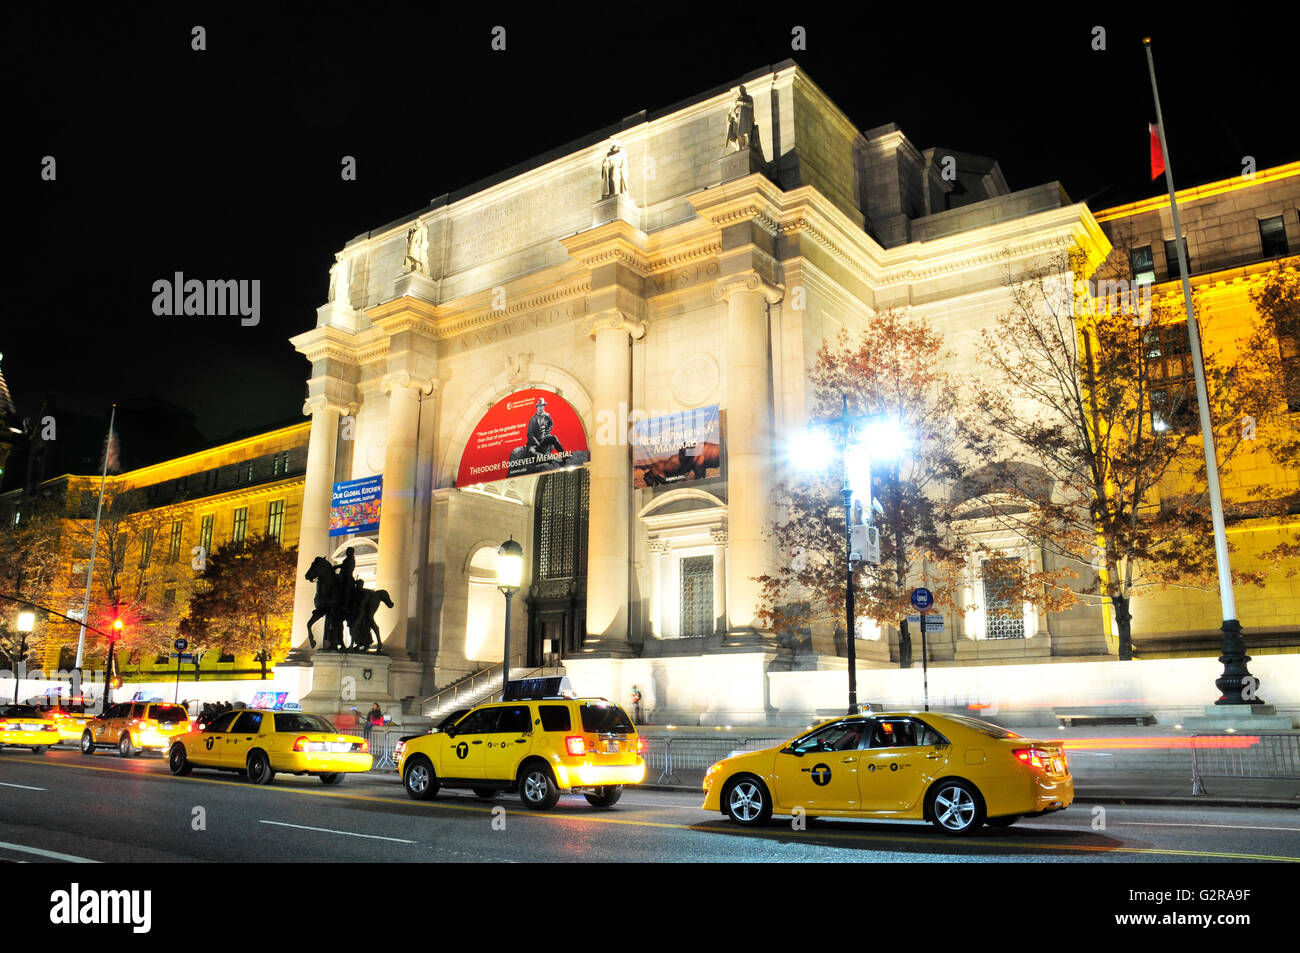 The renovated American Museum of Natural History, Manhattan, New York City, New York, United States - Stock Image